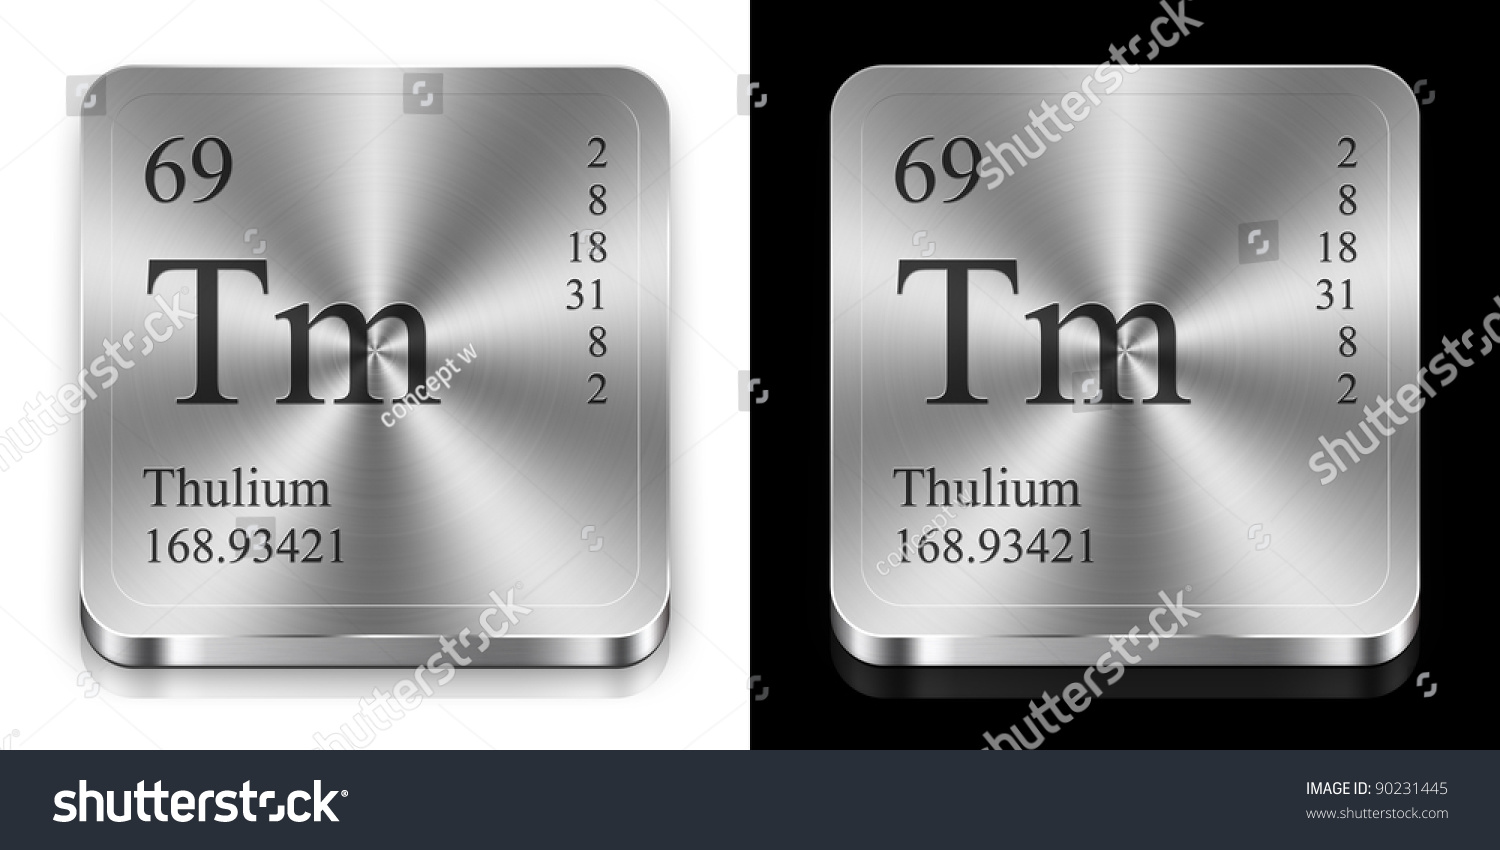 Thulium element periodic table two steel stock illustration thulium element of the periodic table two steel web buttons gamestrikefo Gallery